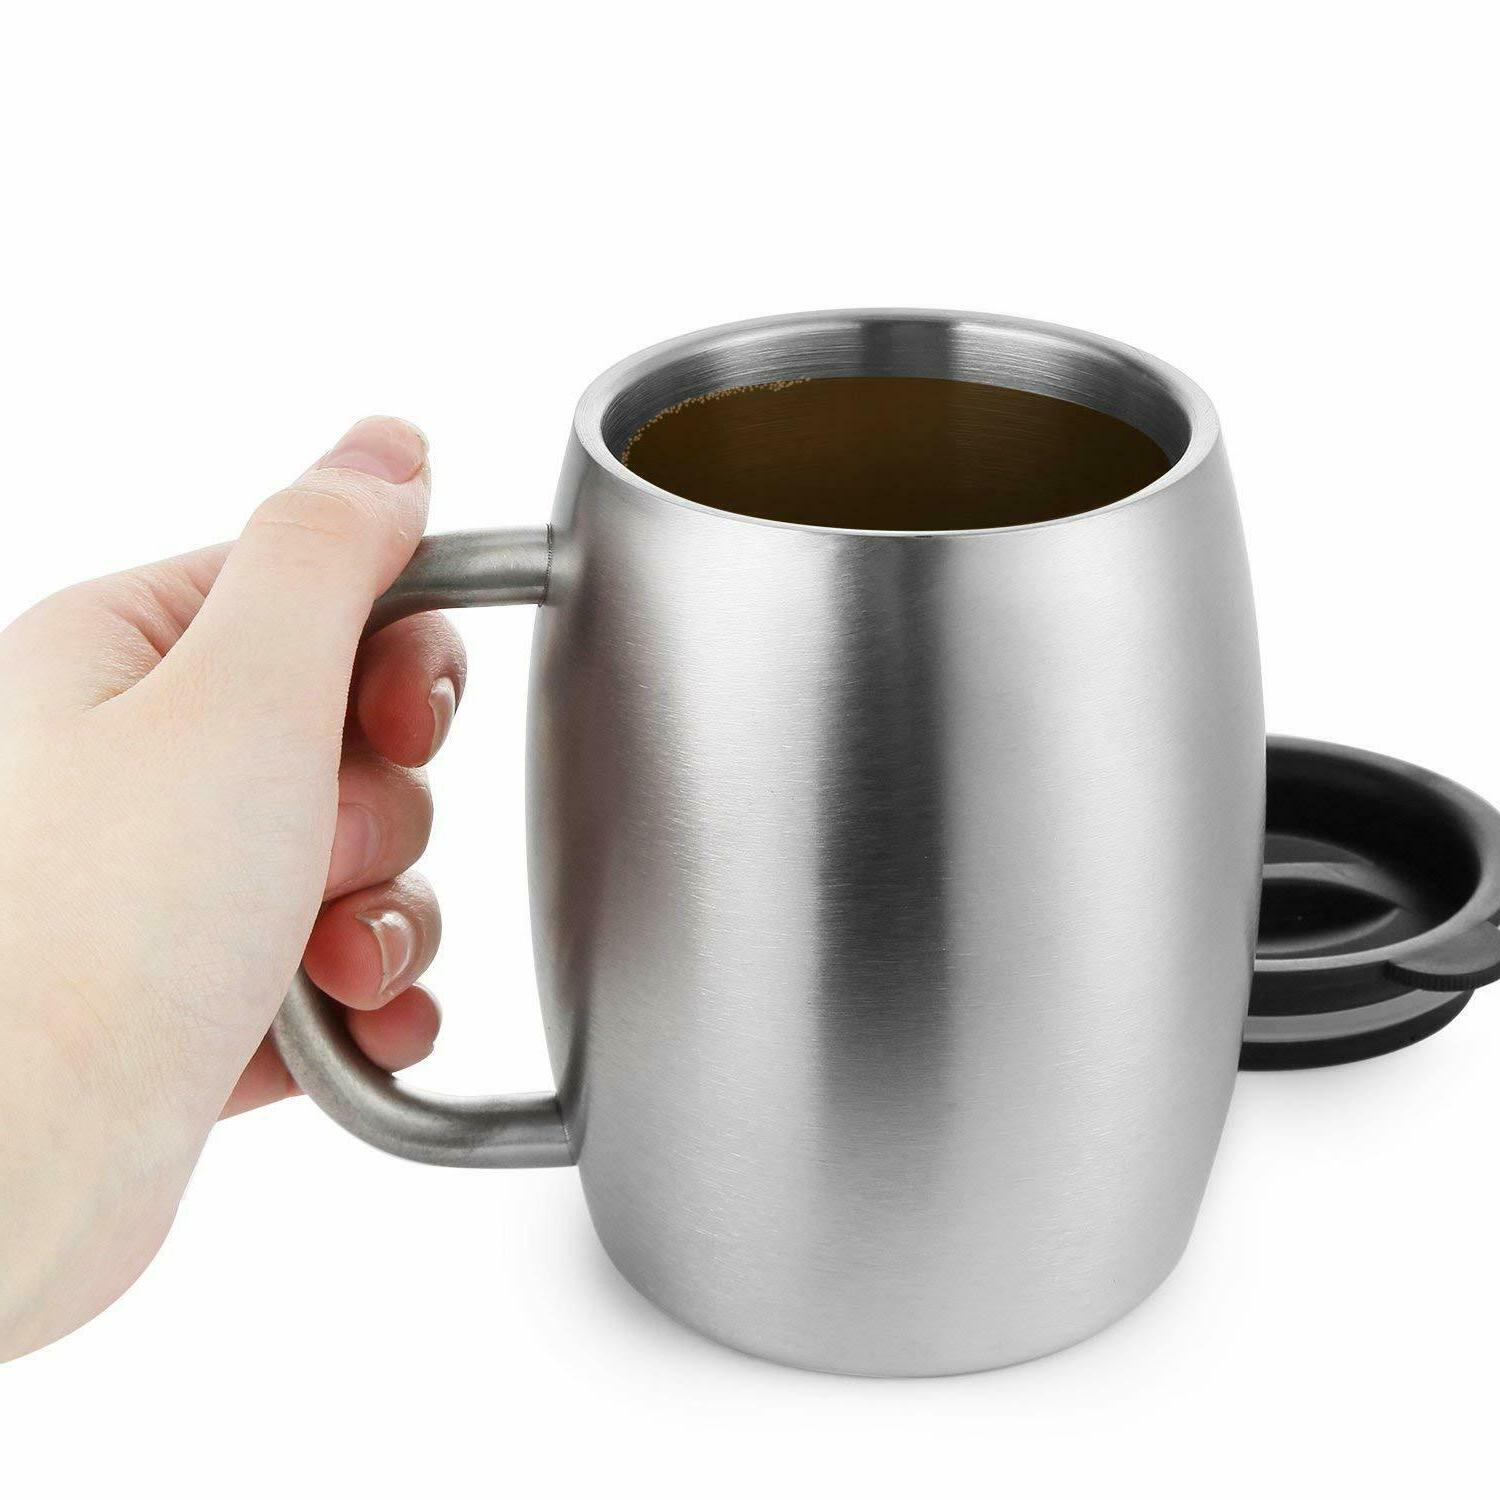 Stainless Steel with Resistant Lids, 14 Oz Insul